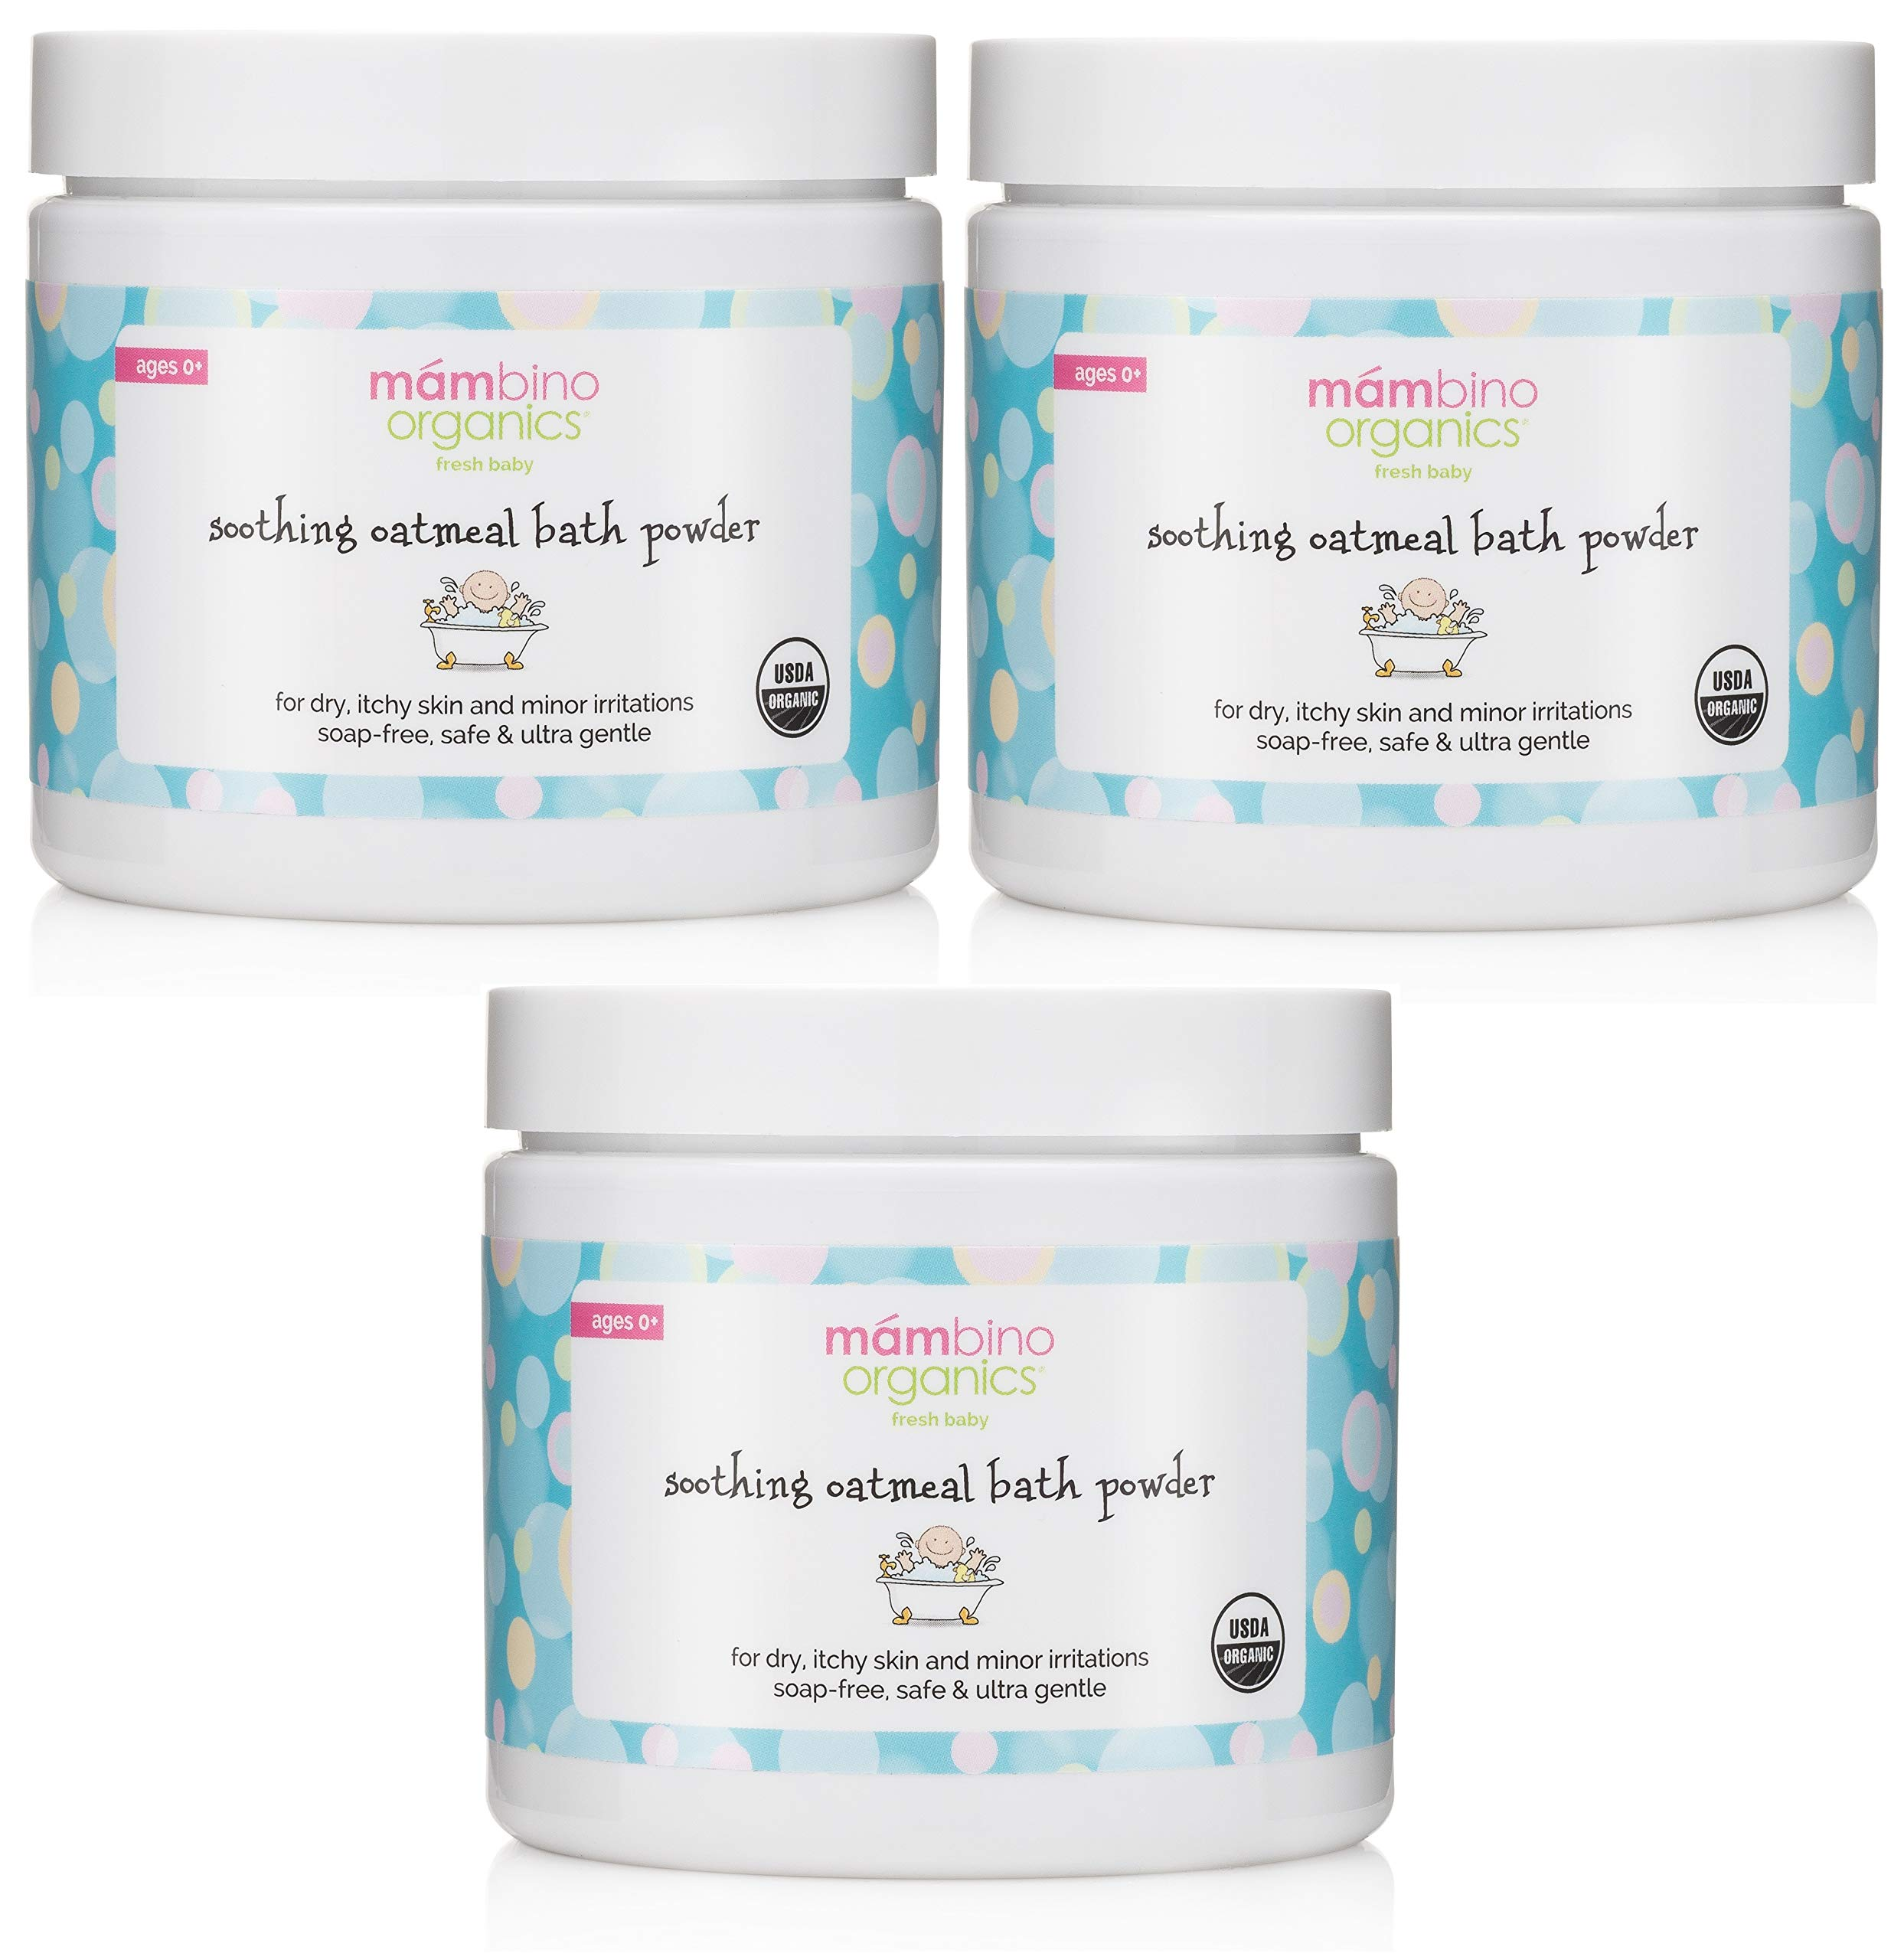 Mambino Organics Soothing Bath Treatment with 100% Natural Colloidal Oatmeal for Treatment & Relief of Dry, Itchy, 4 Ounce (3-Pack) by Mambino Organics